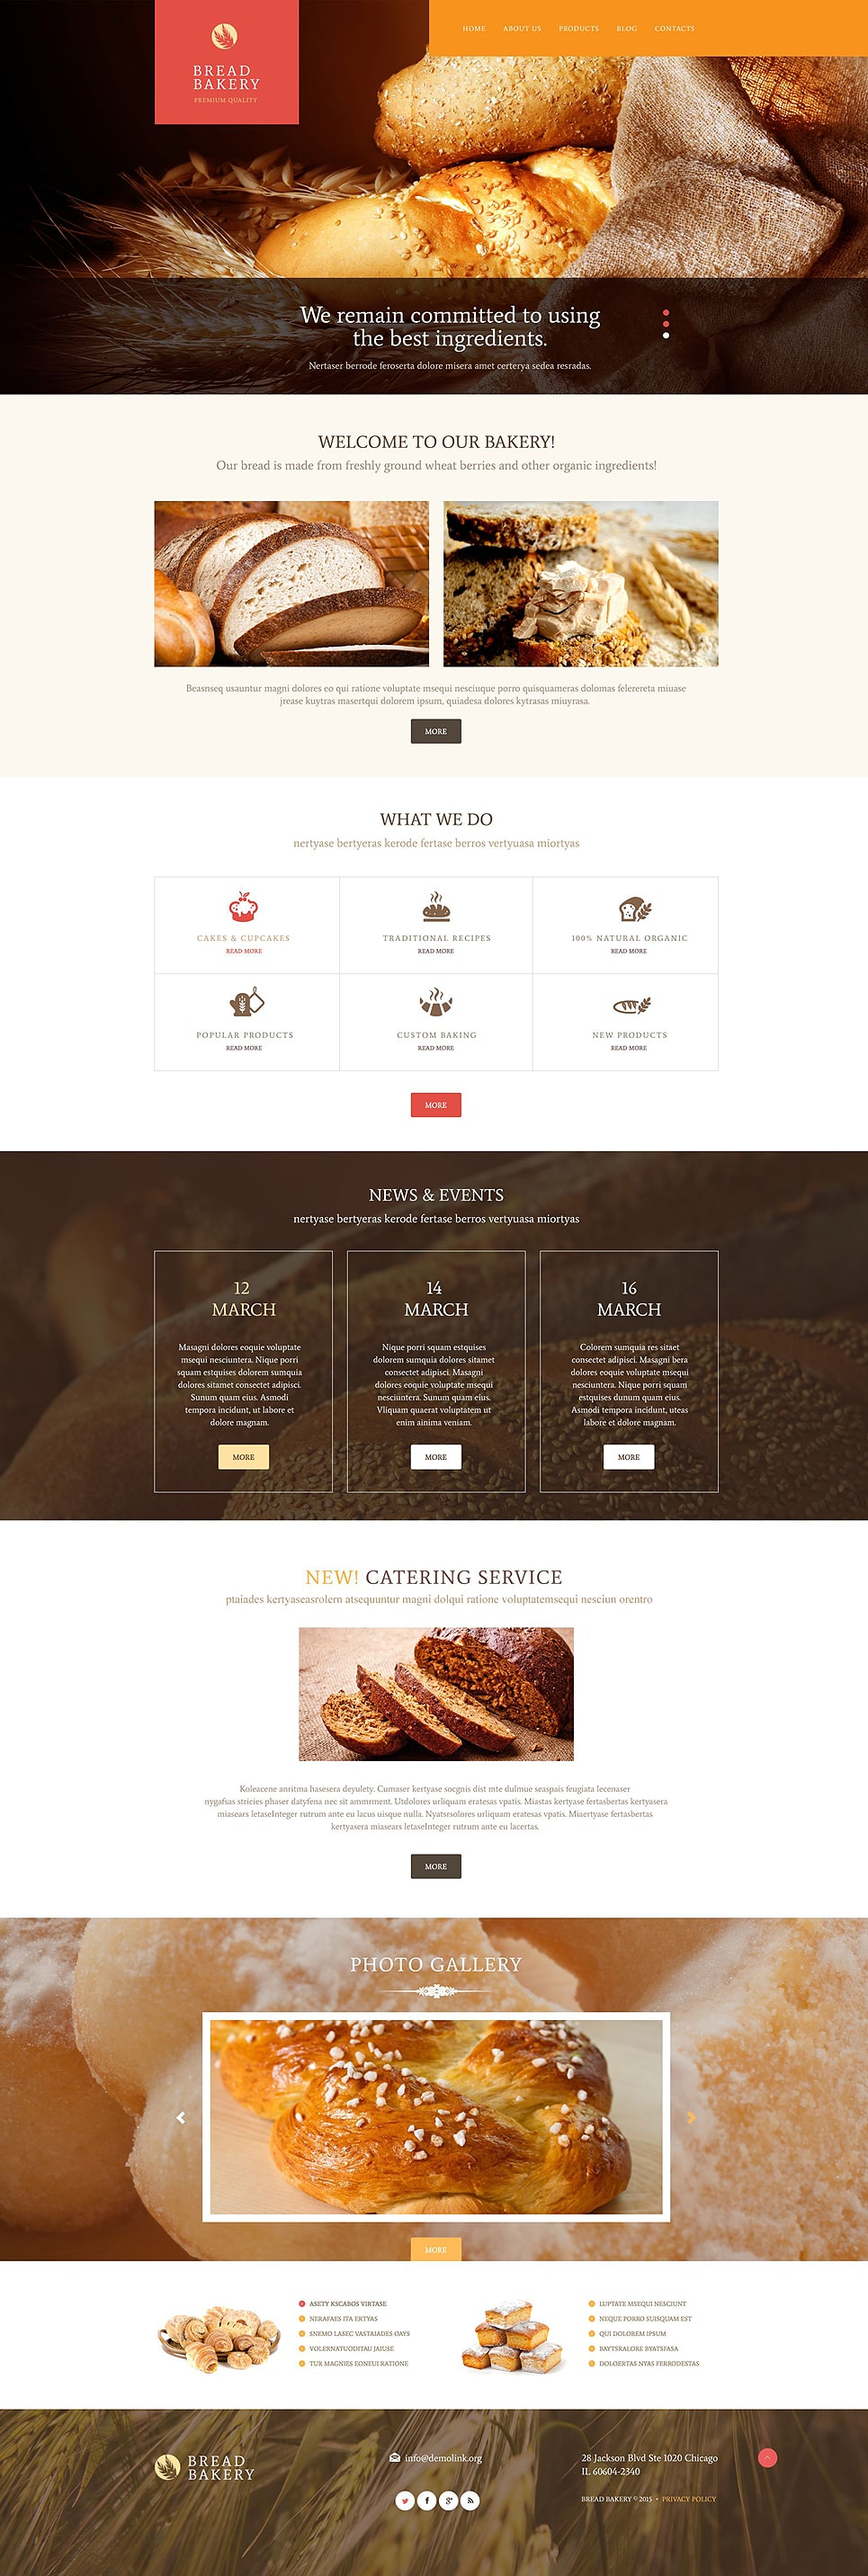 Bread Bakery PSD Template